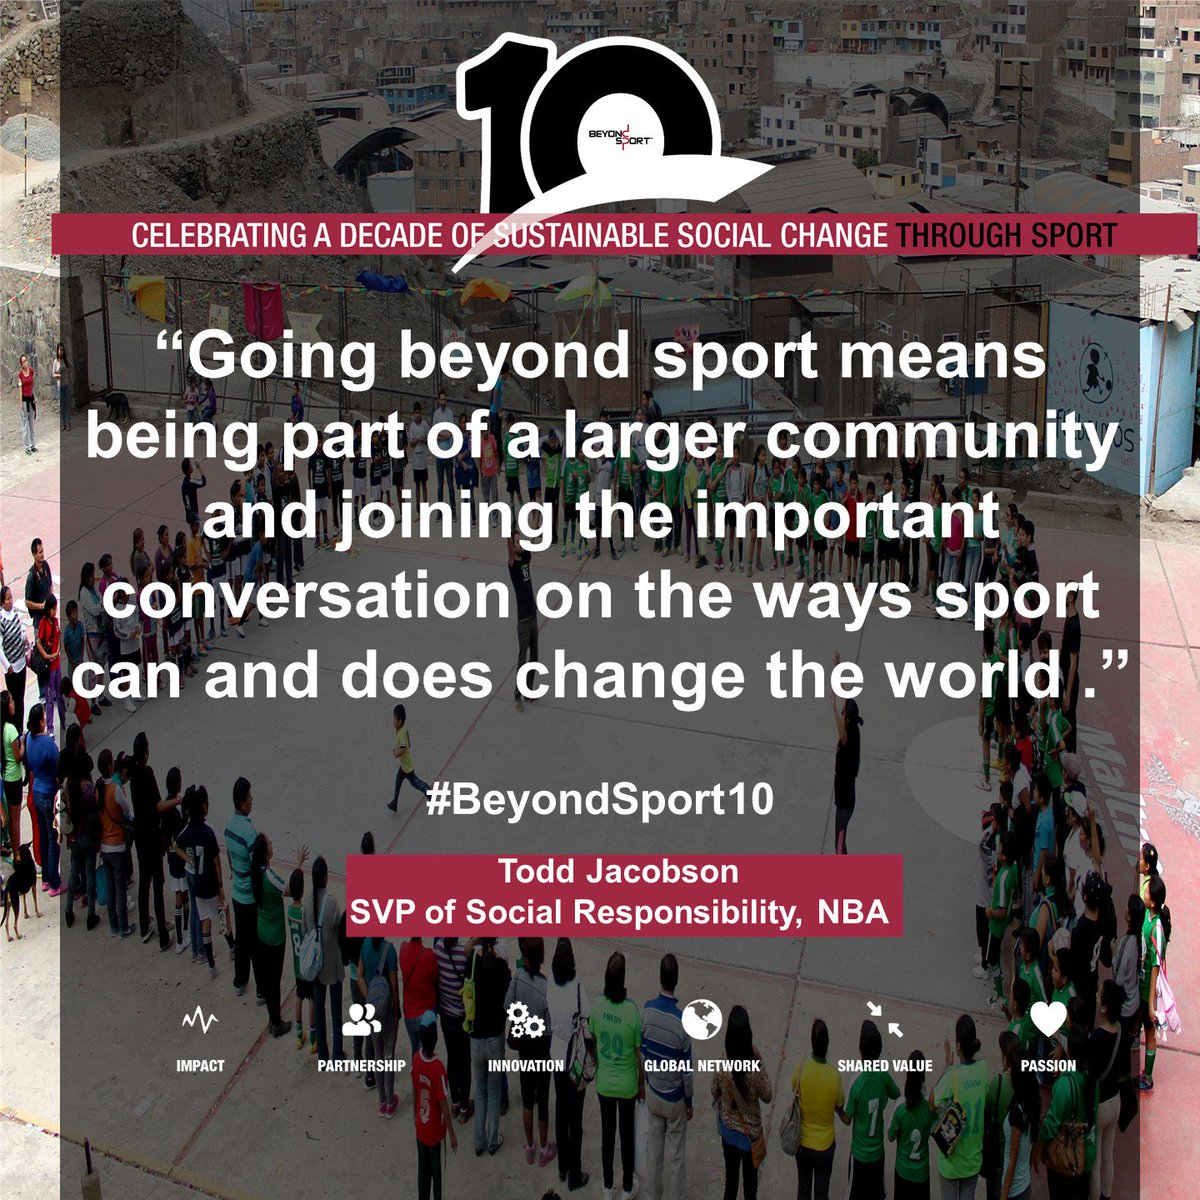 test Twitter Media - The @nba's Todd Jacobson believes sport can bring communities together, break down barriers & serve to connect people of all backgrounds, particularly youth, in unique ways that create commonality. What does going #BeyondSport mean to you?  https://t.co/5XiYaqmz26 #beyondsport10 https://t.co/KfYemc0h8z